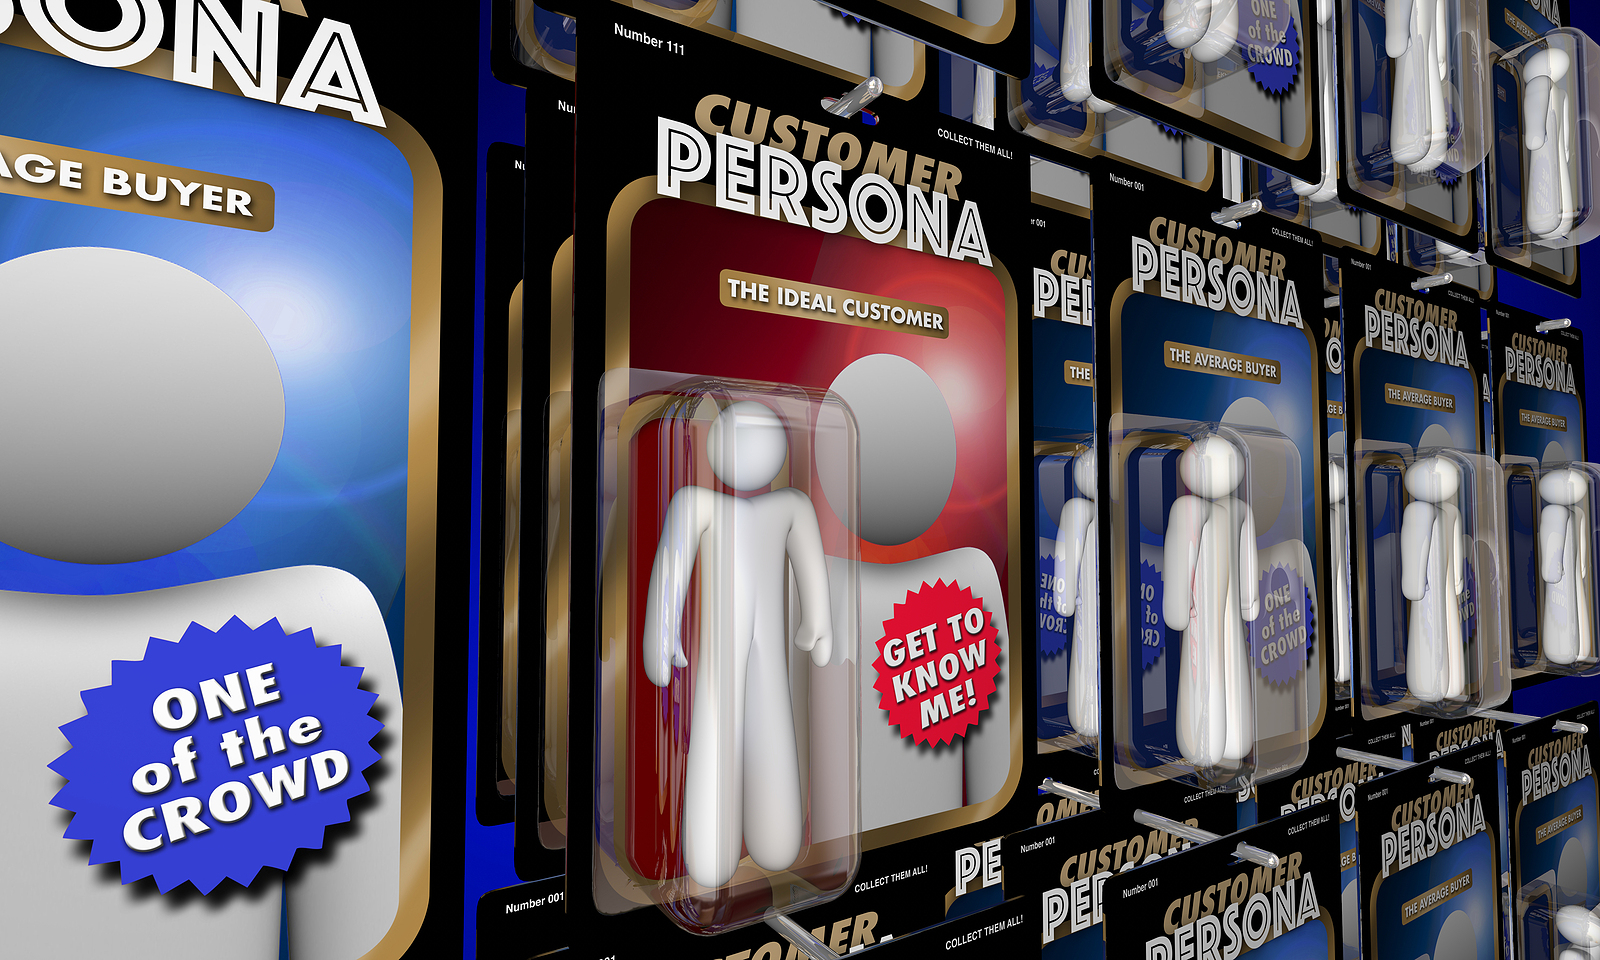 How to Build an Effective Customer Persona